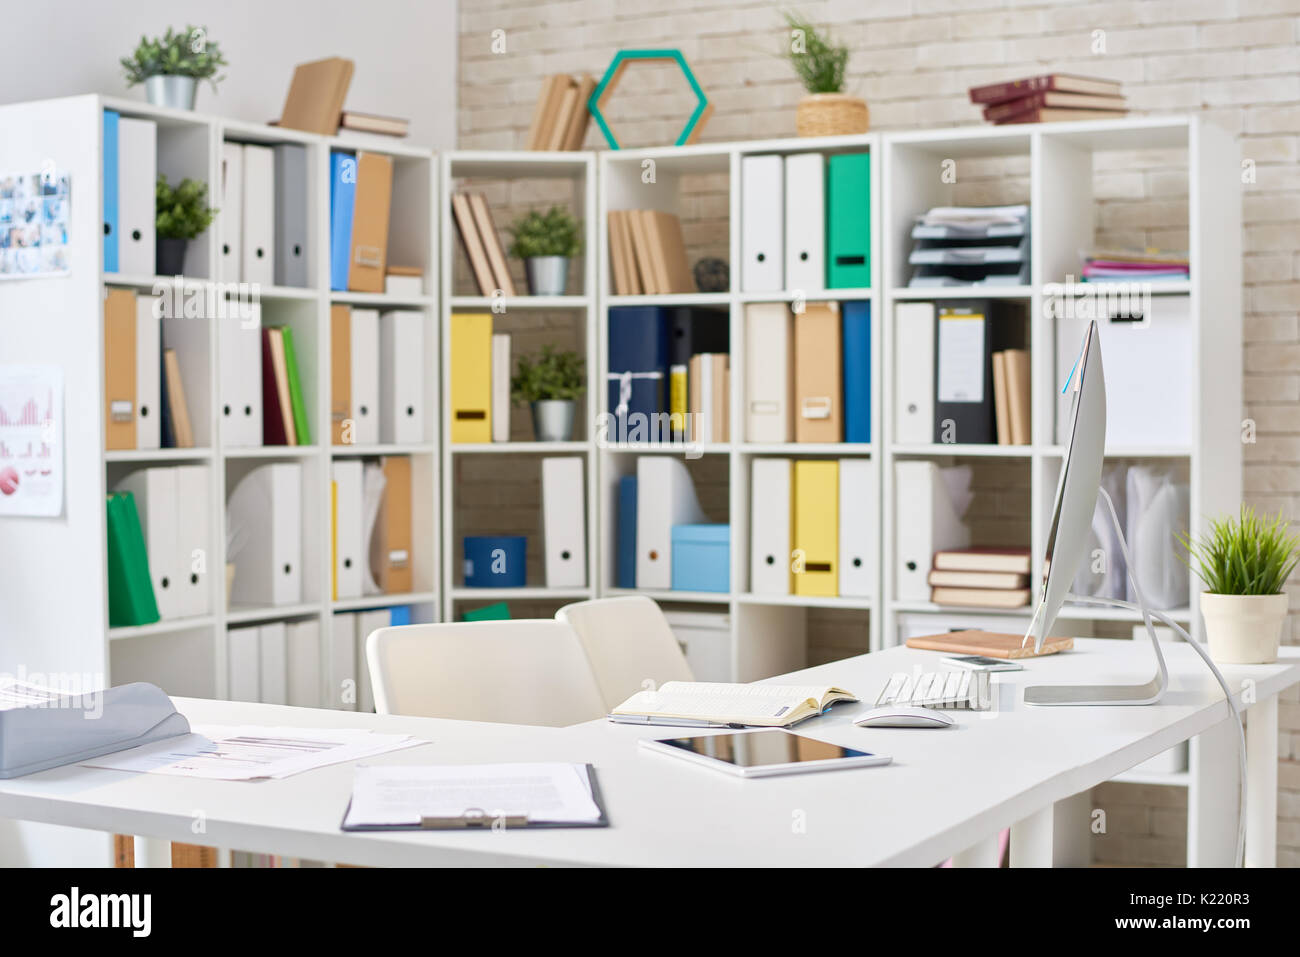 modern open plan interior office space. Modern Open Plan Office - Stock Image Interior Space A